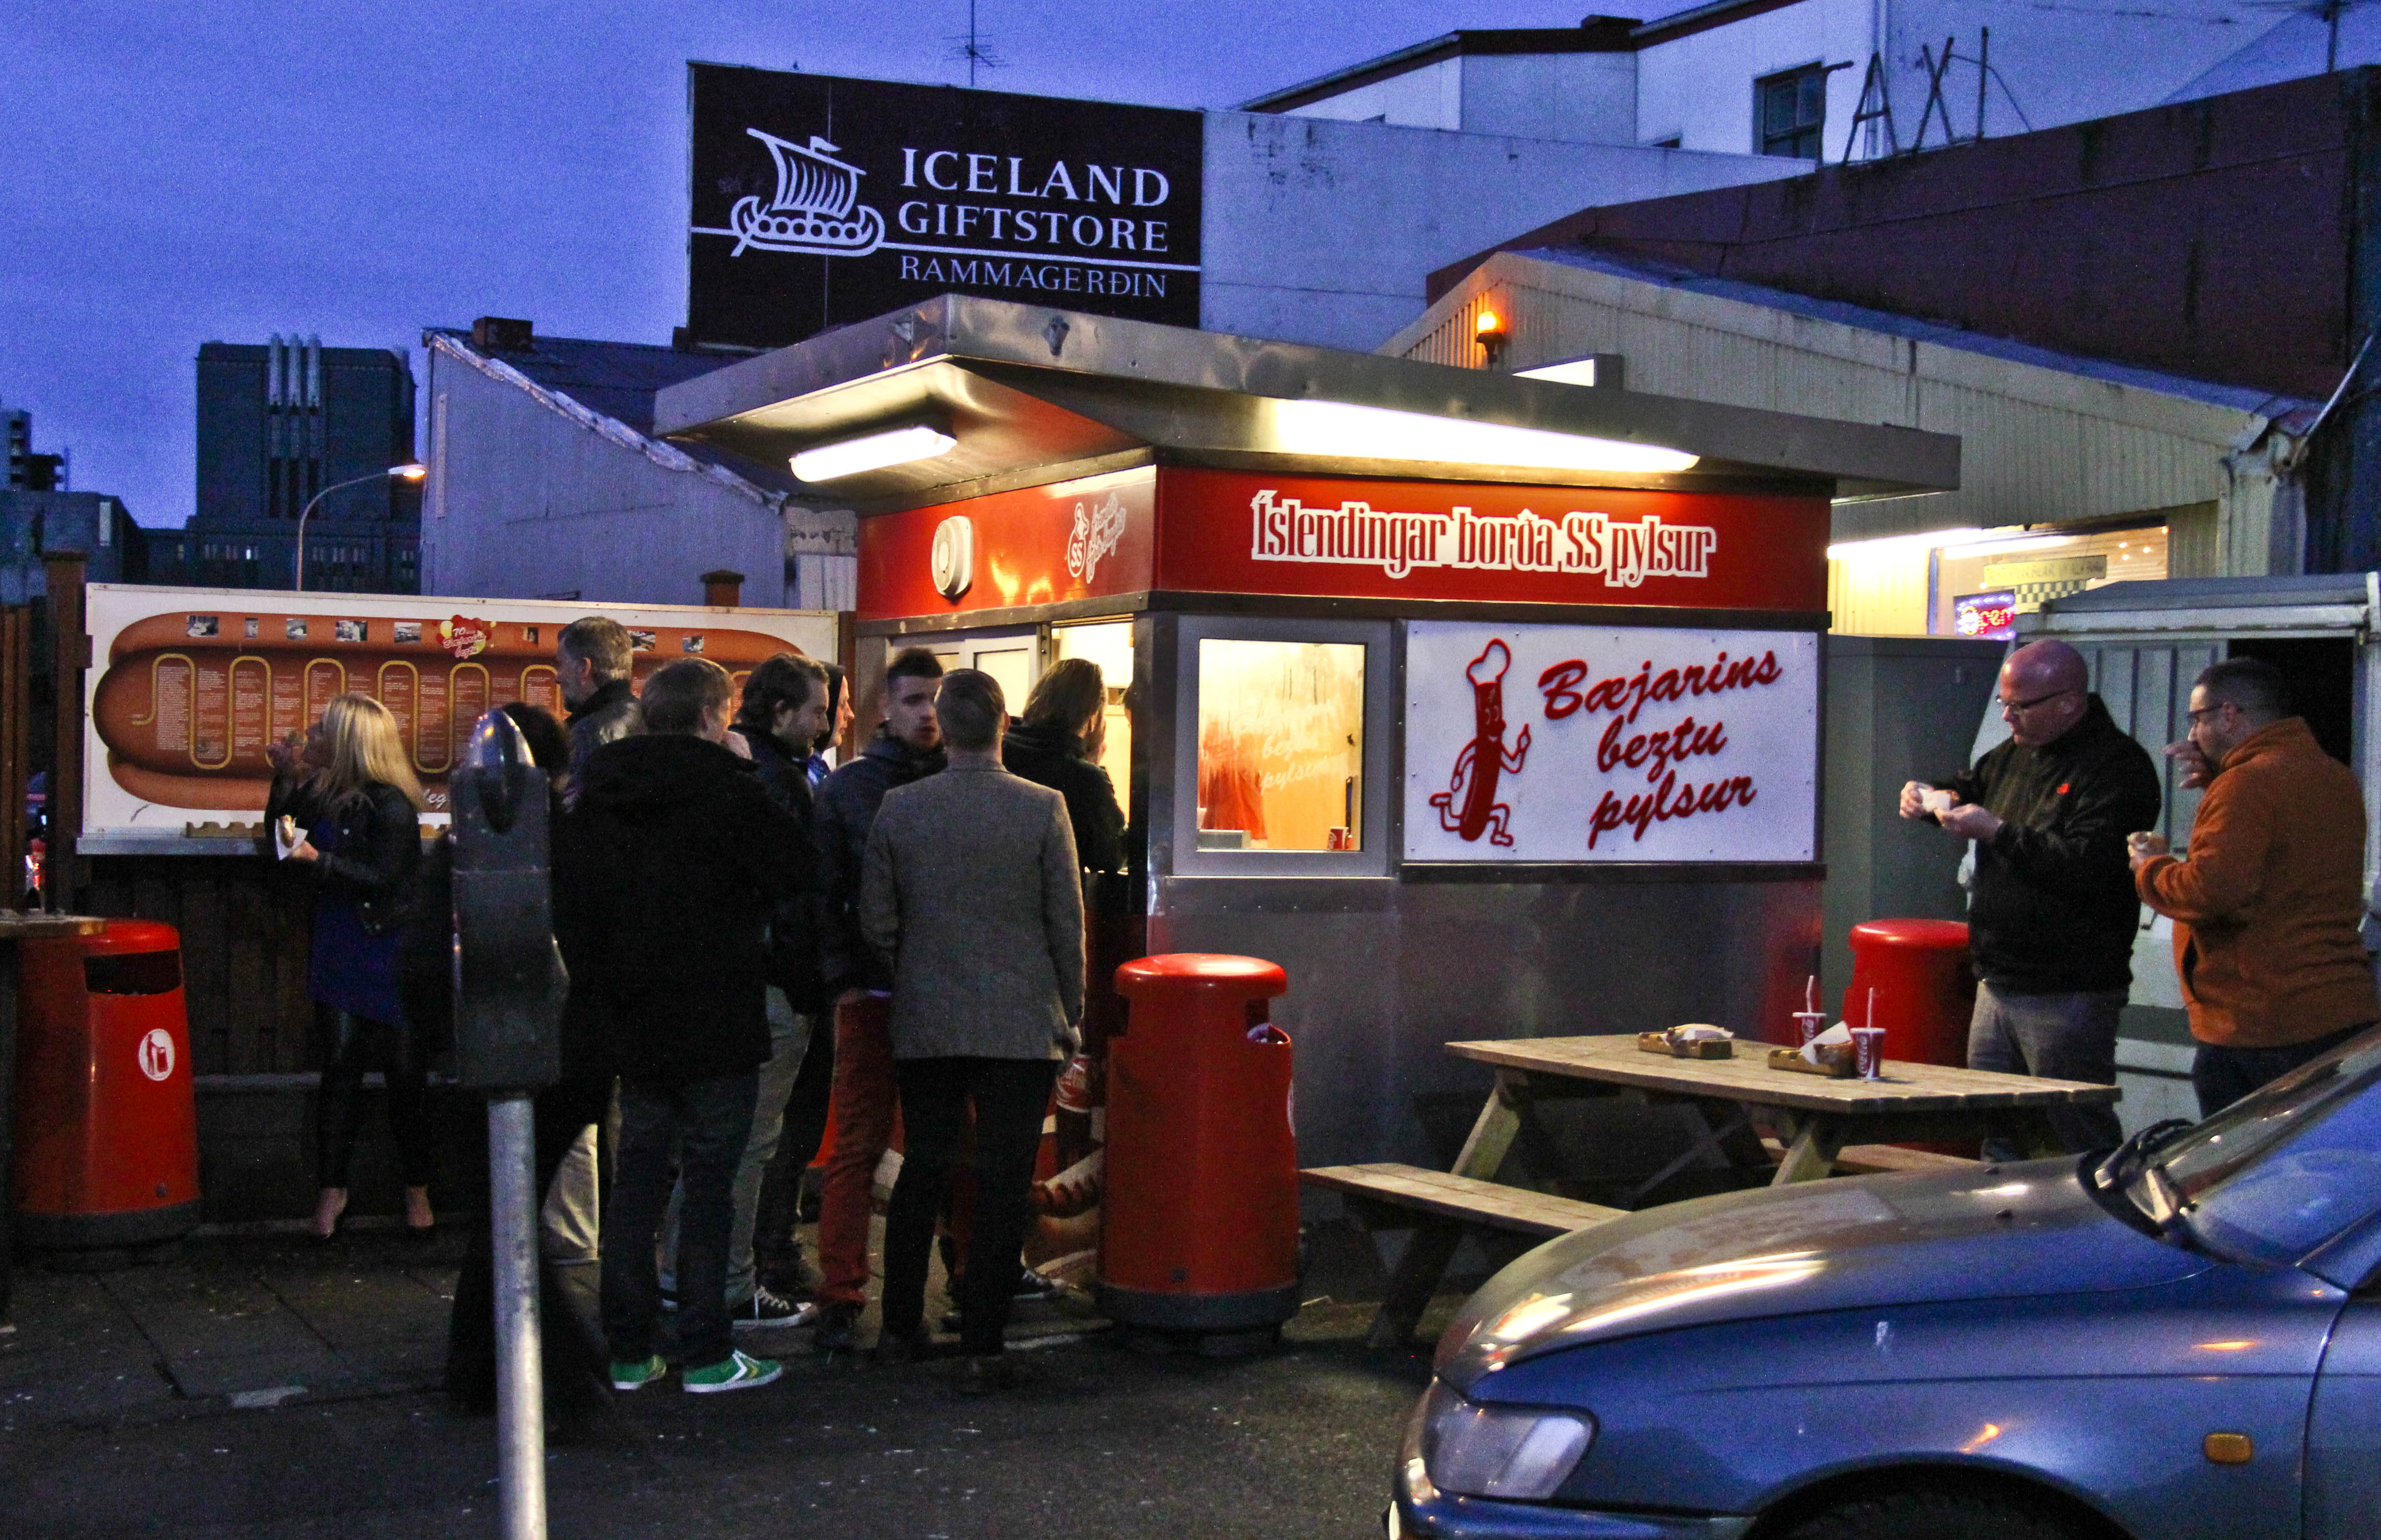 Check out Reykjavik's most famous hot dog stand!